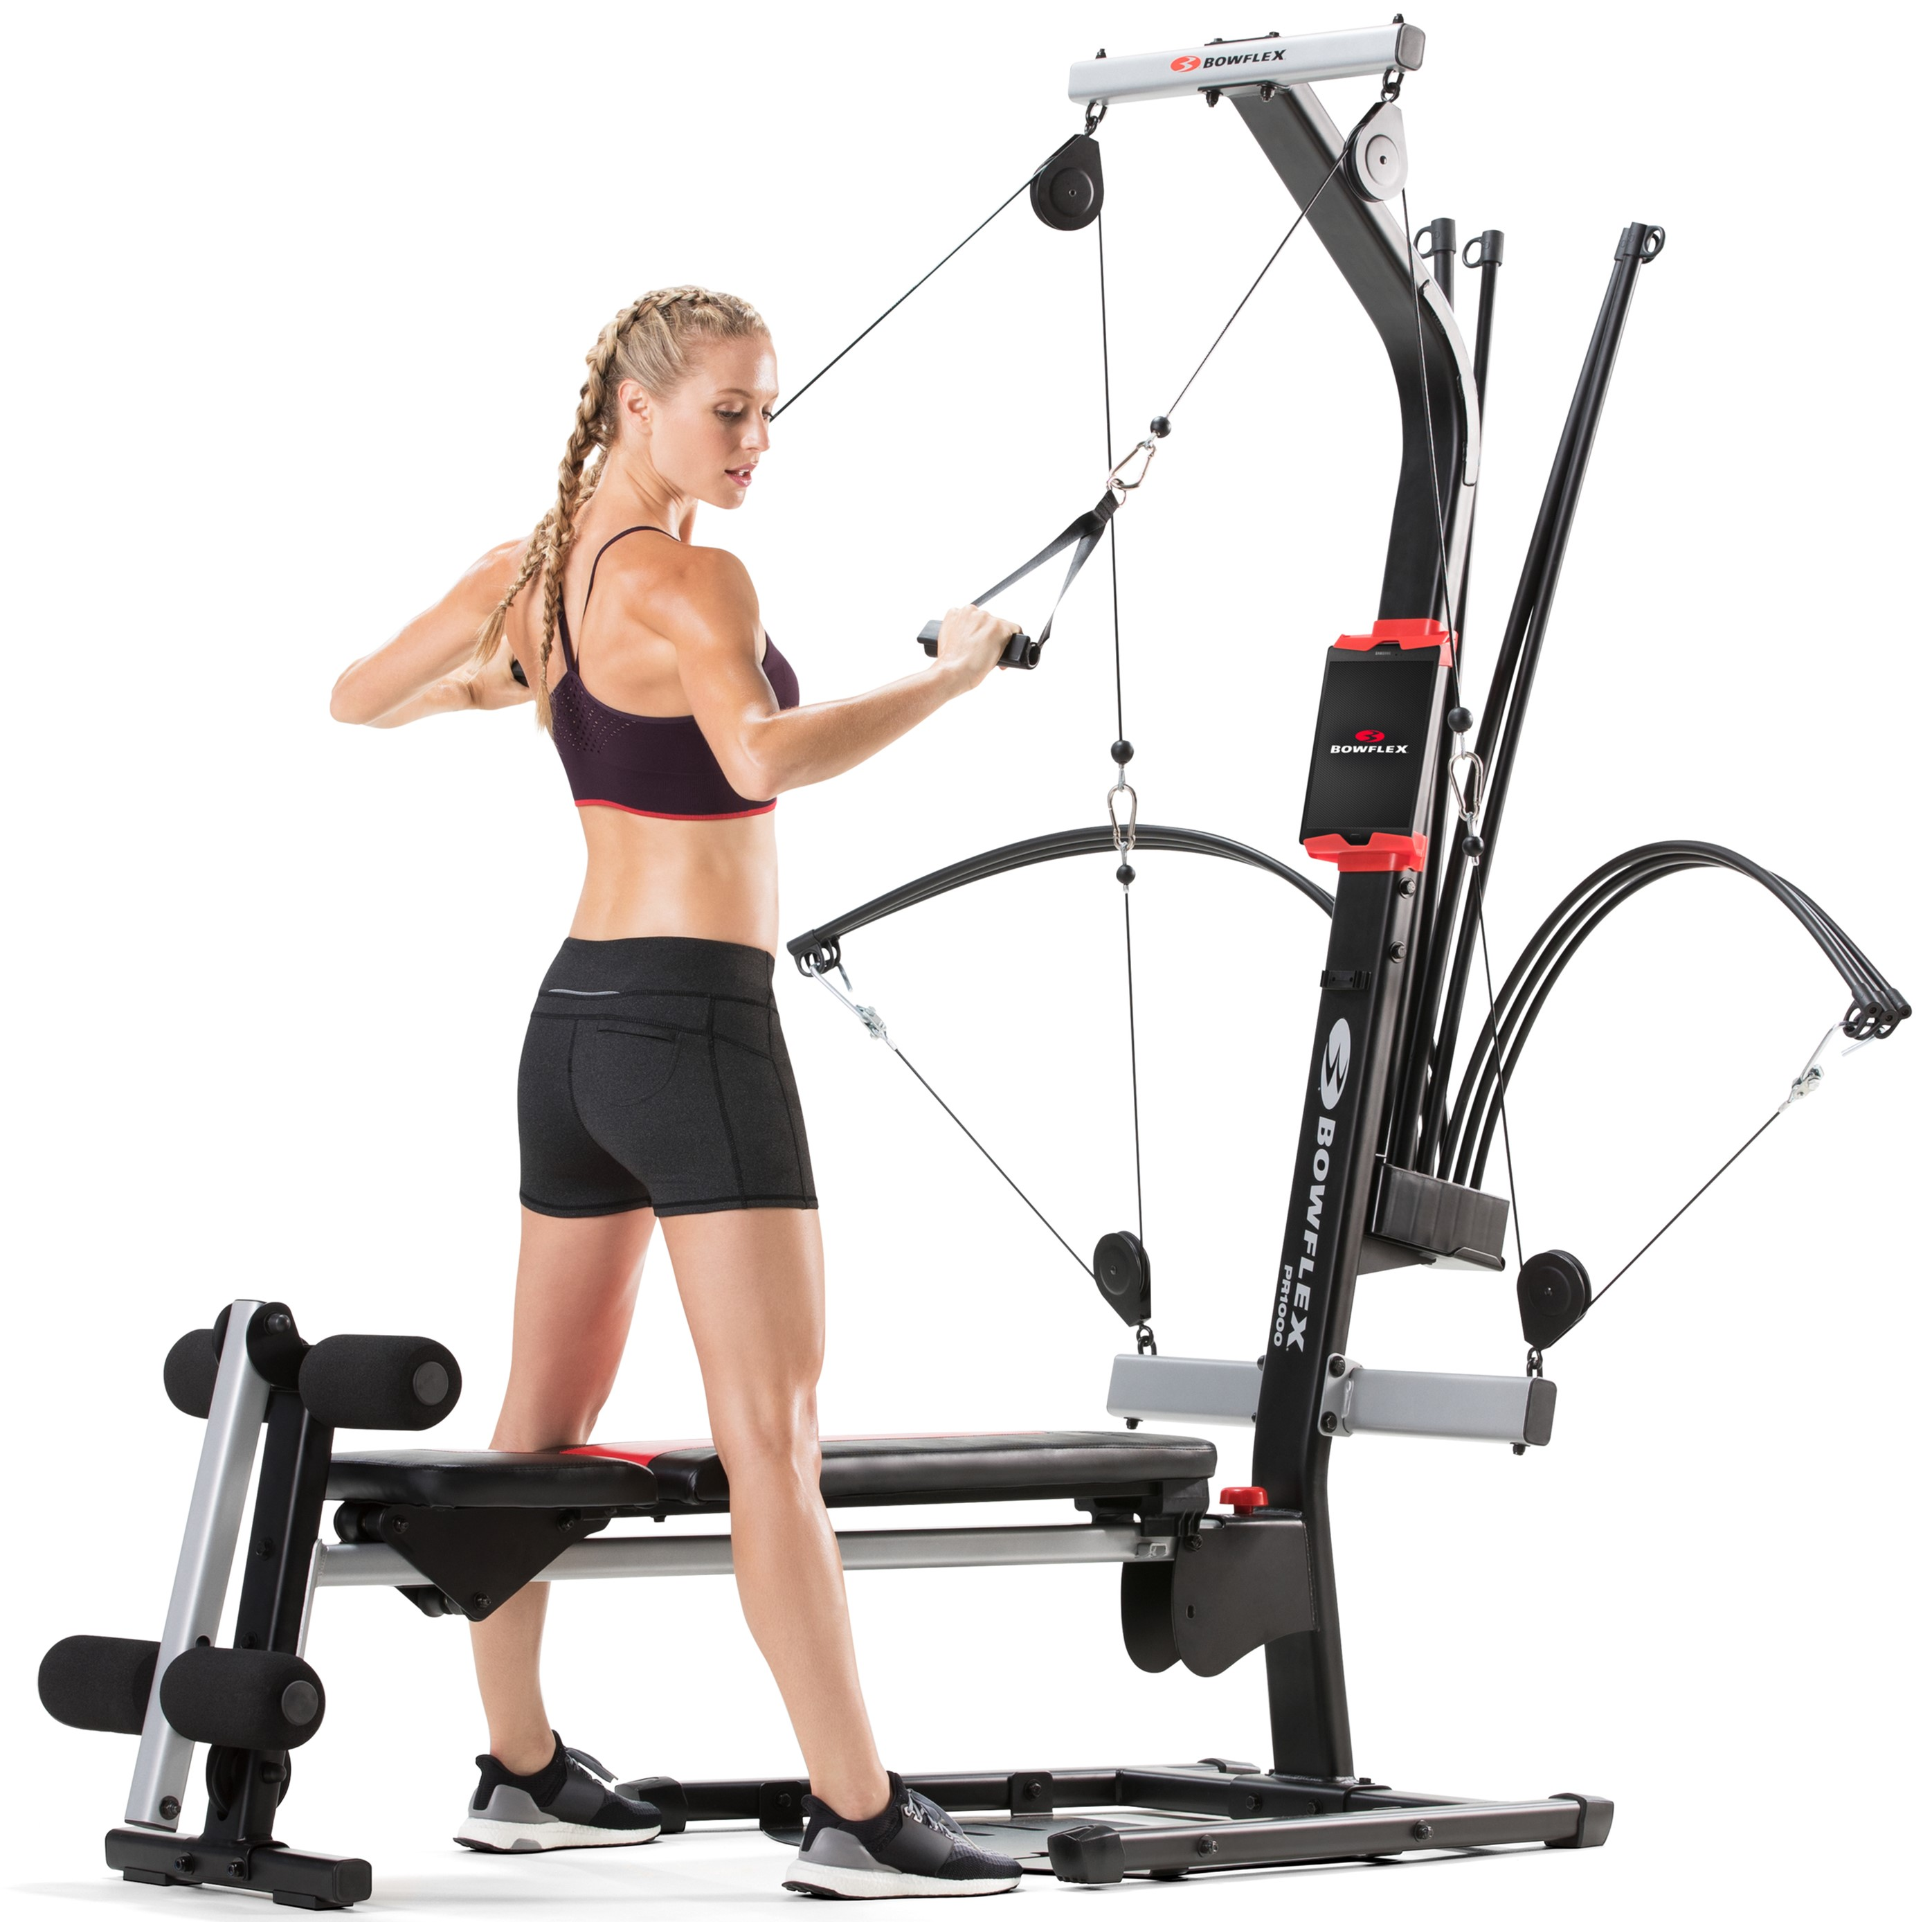 Best Home Exercise Equipment Under 200: Bowflex PR1000 Home Gym With FREE Equipment Mat Value